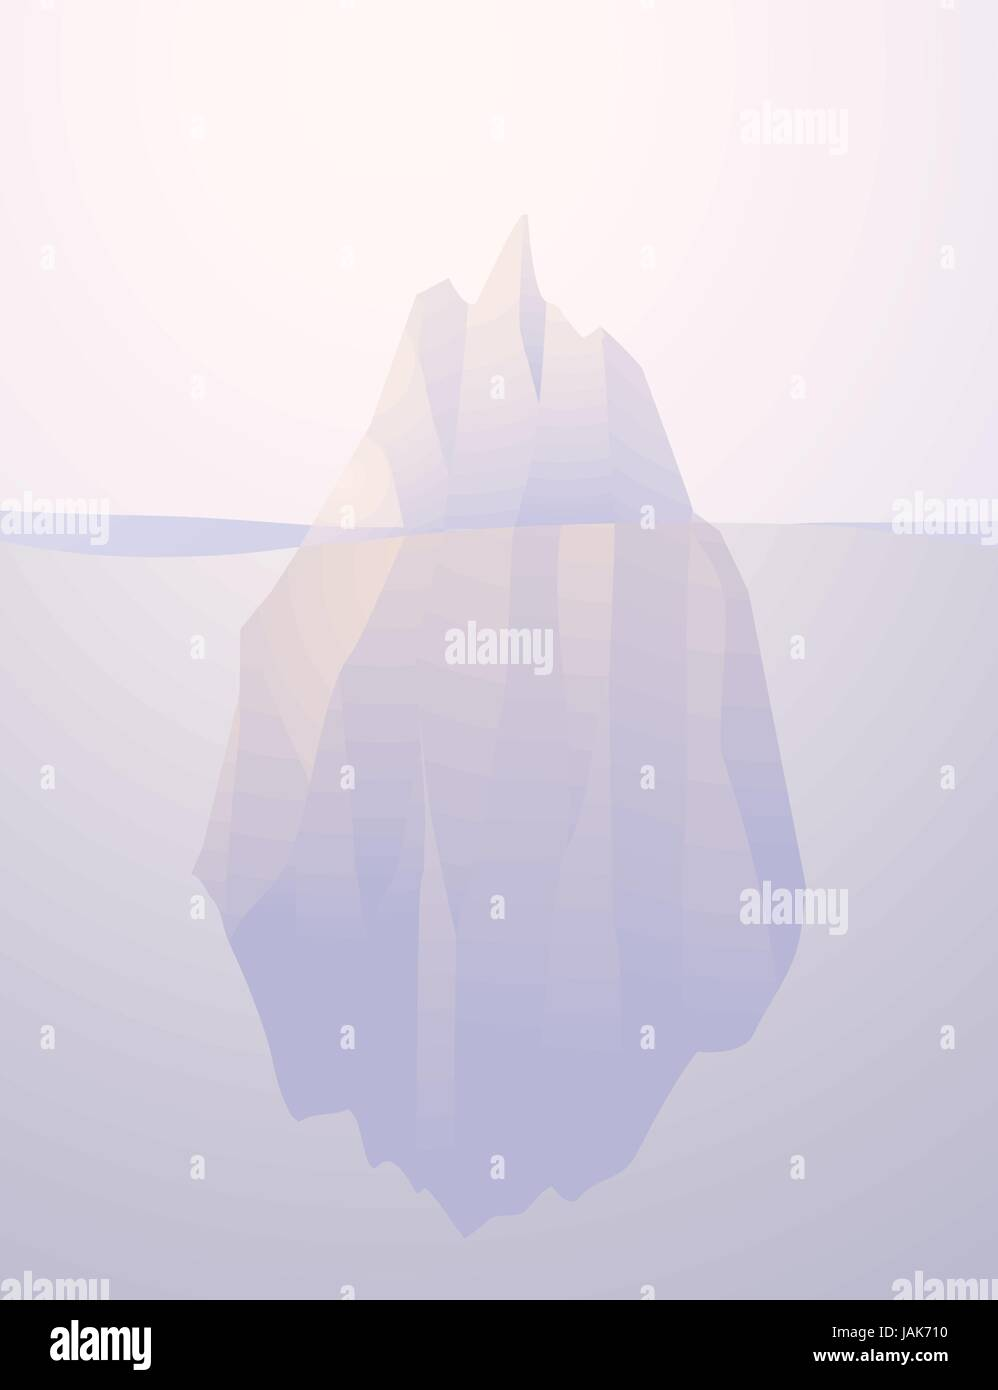 Iceberg nature submerged vector illustration - Stock Vector